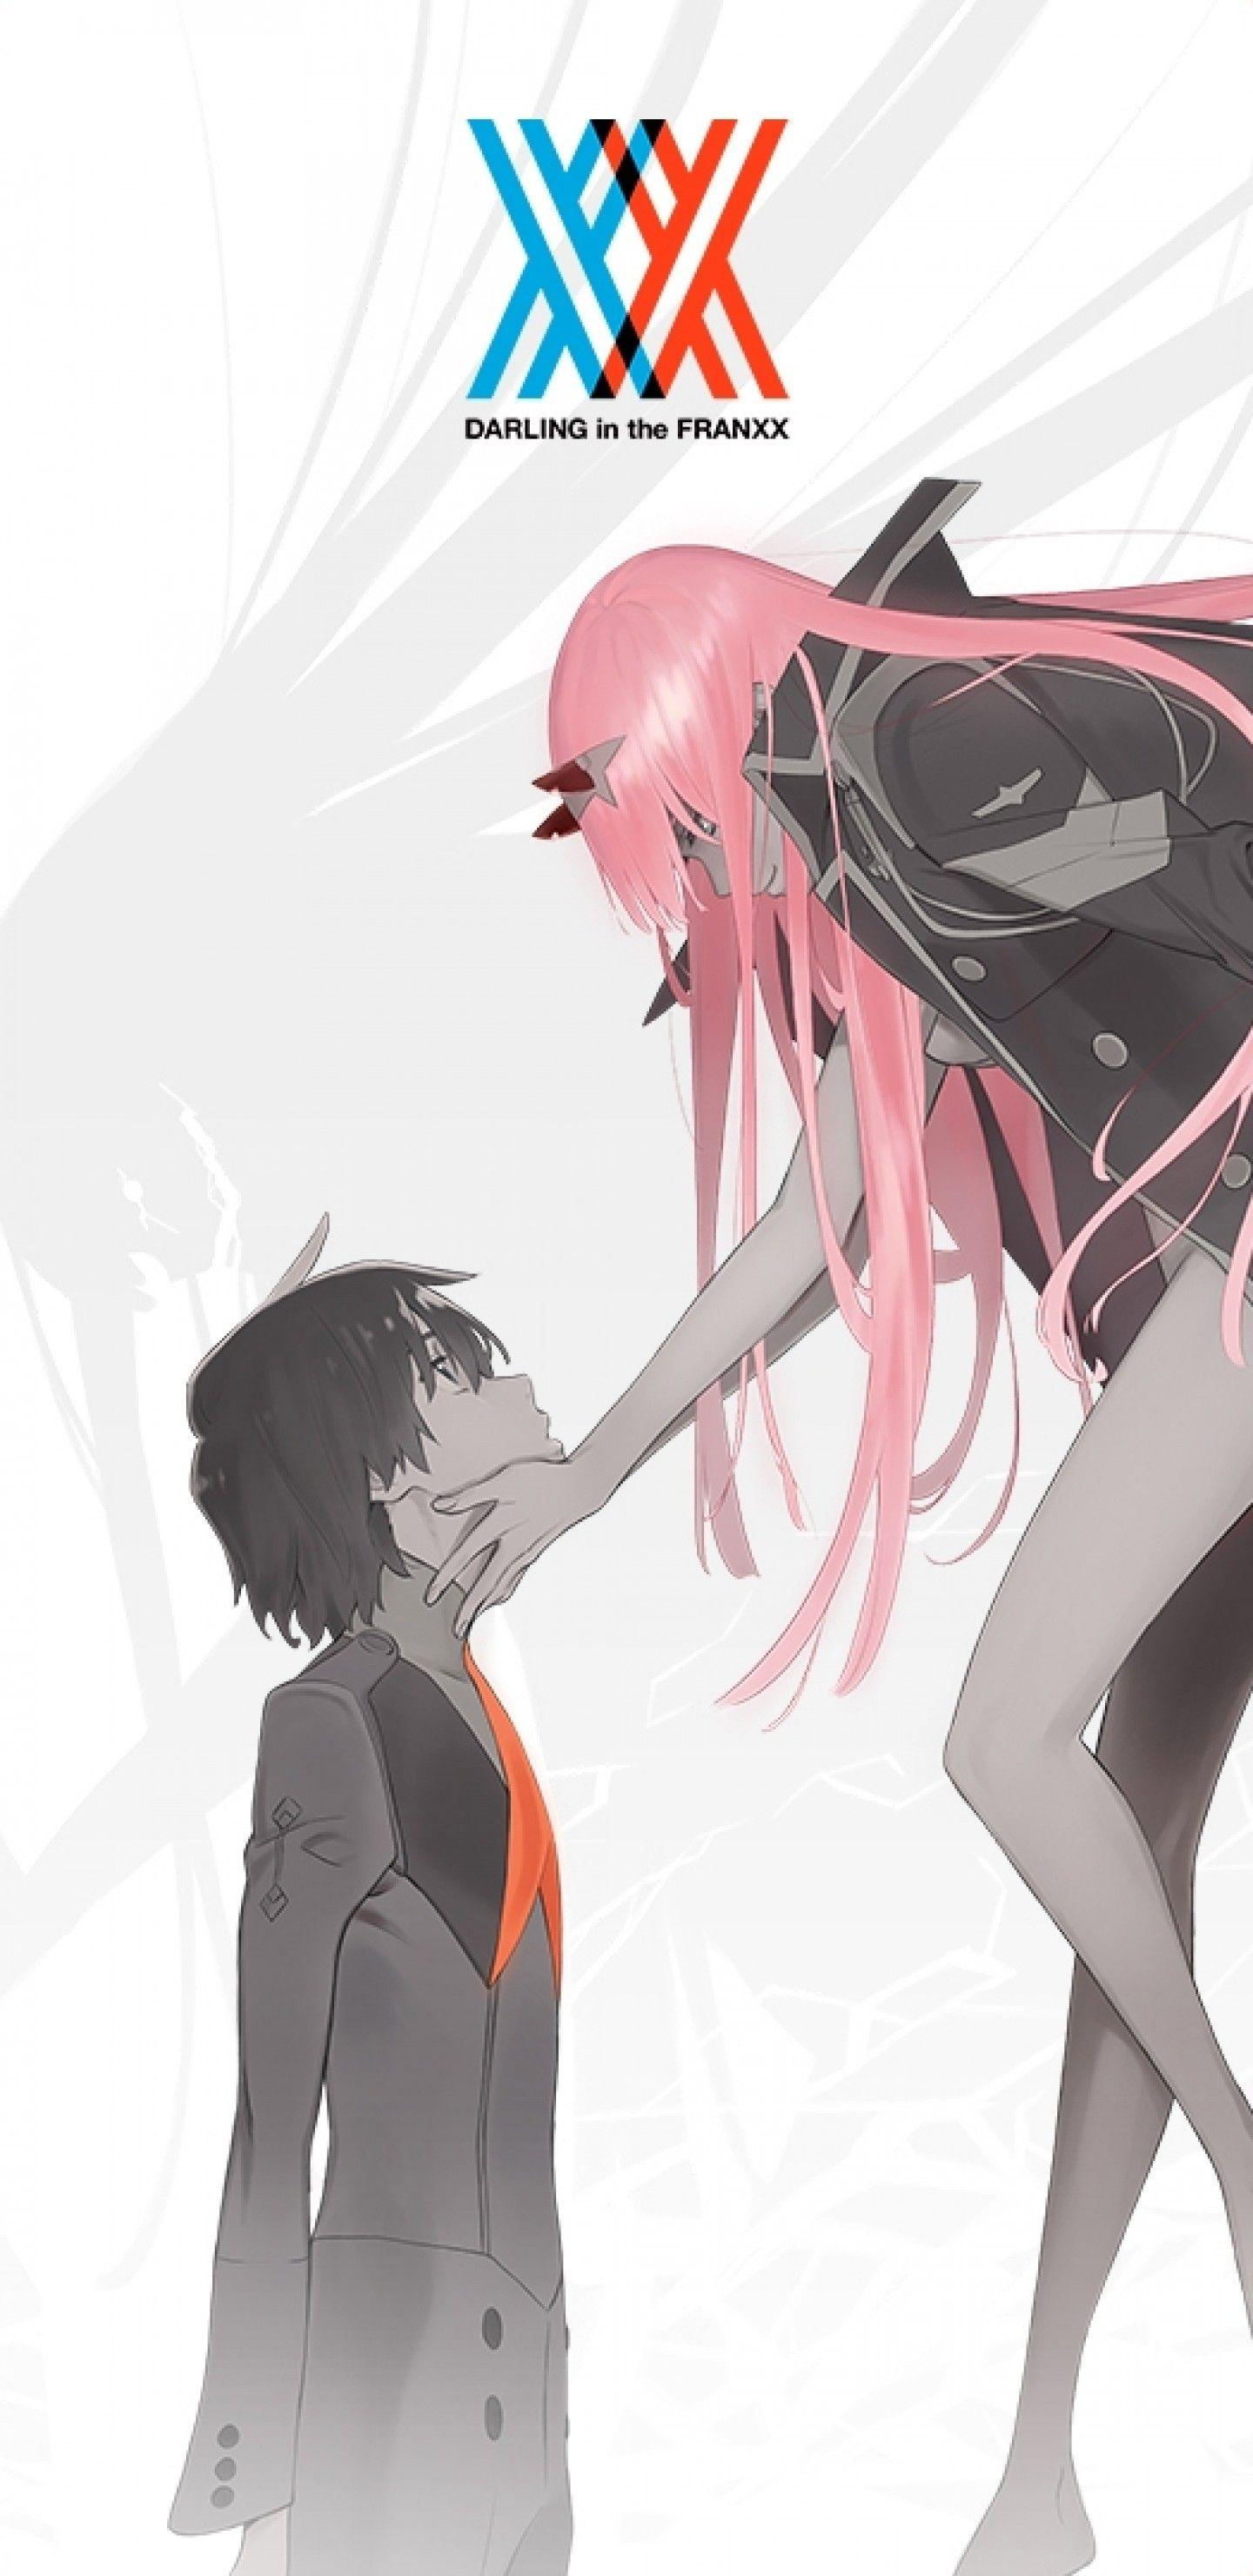 Download 1440x2960 Darling In The Franxx, Zero Two, Hiro, Pink